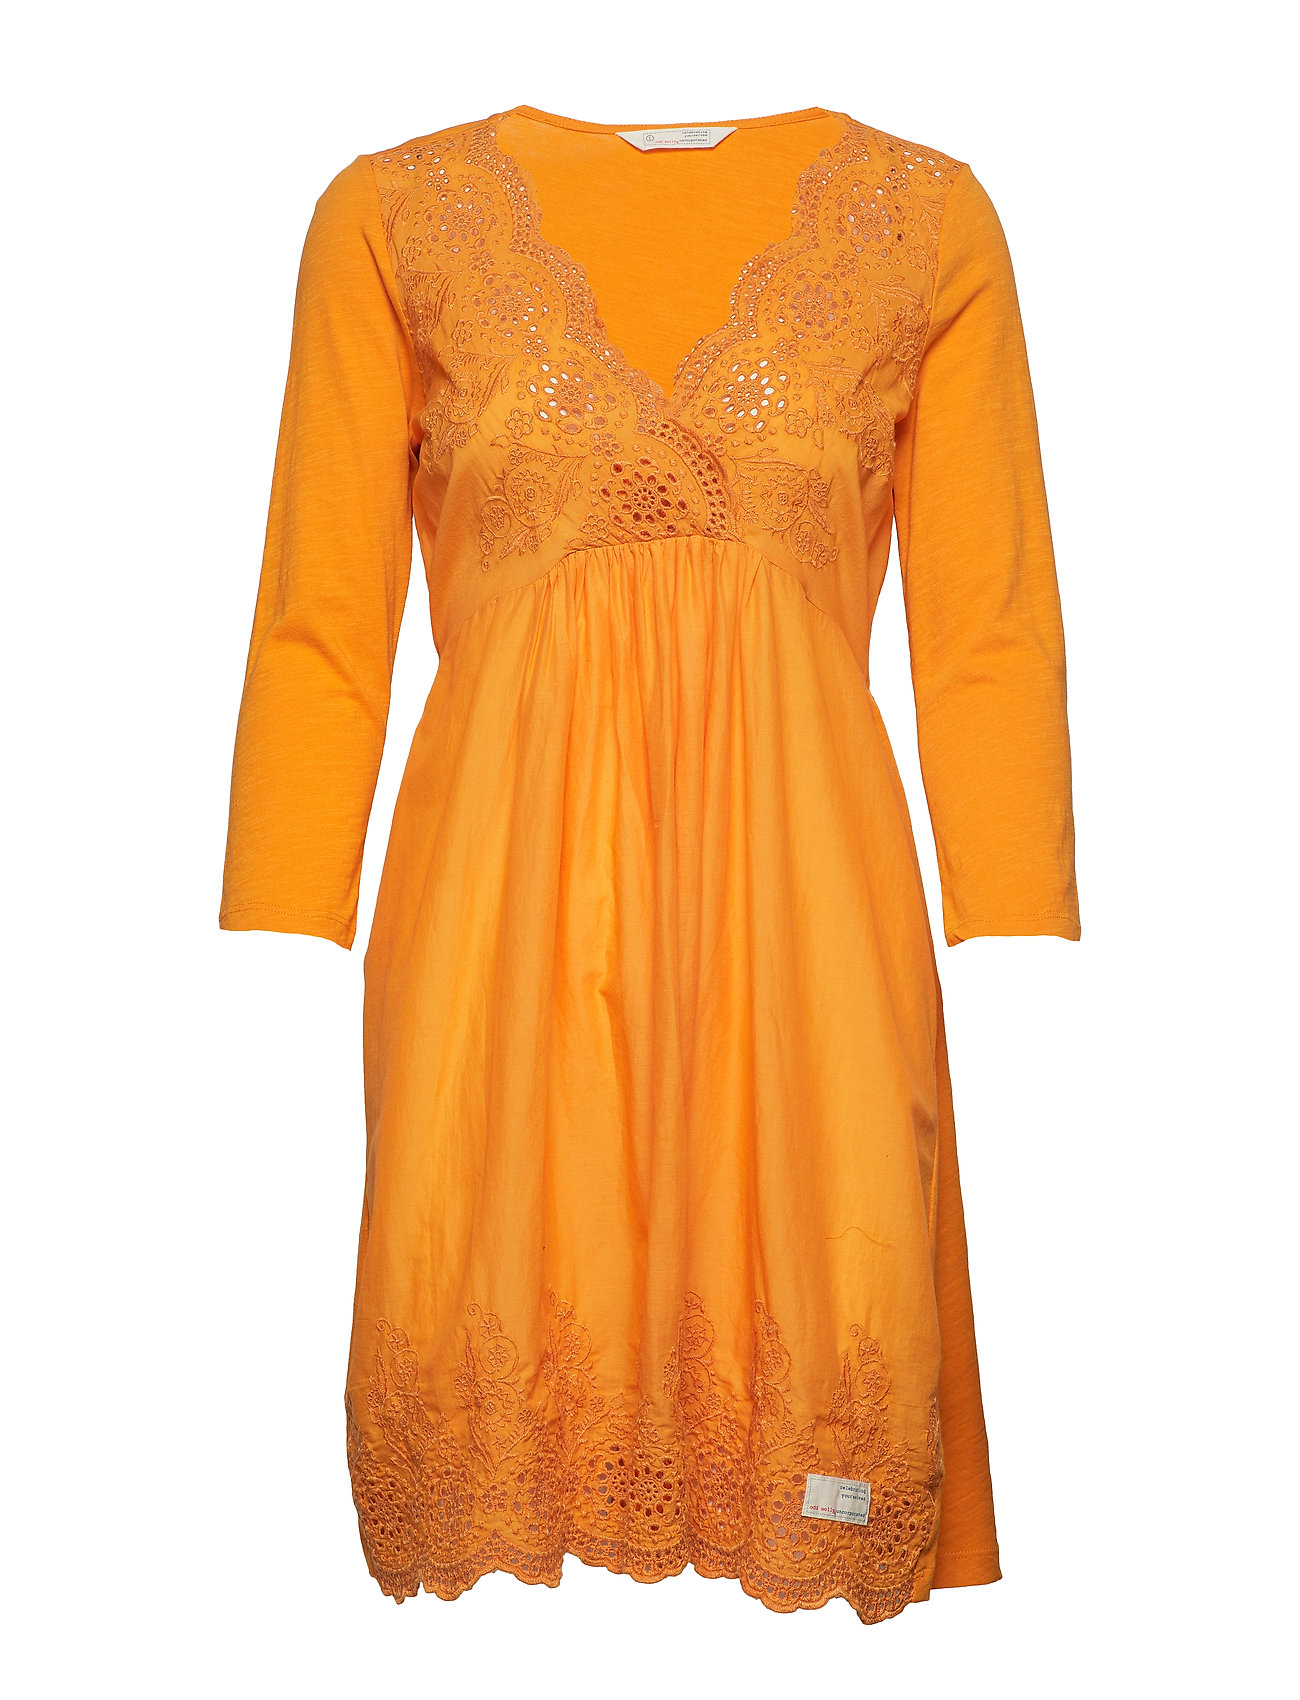 ODD MOLLY backyard dress - GOLDEN HONEY